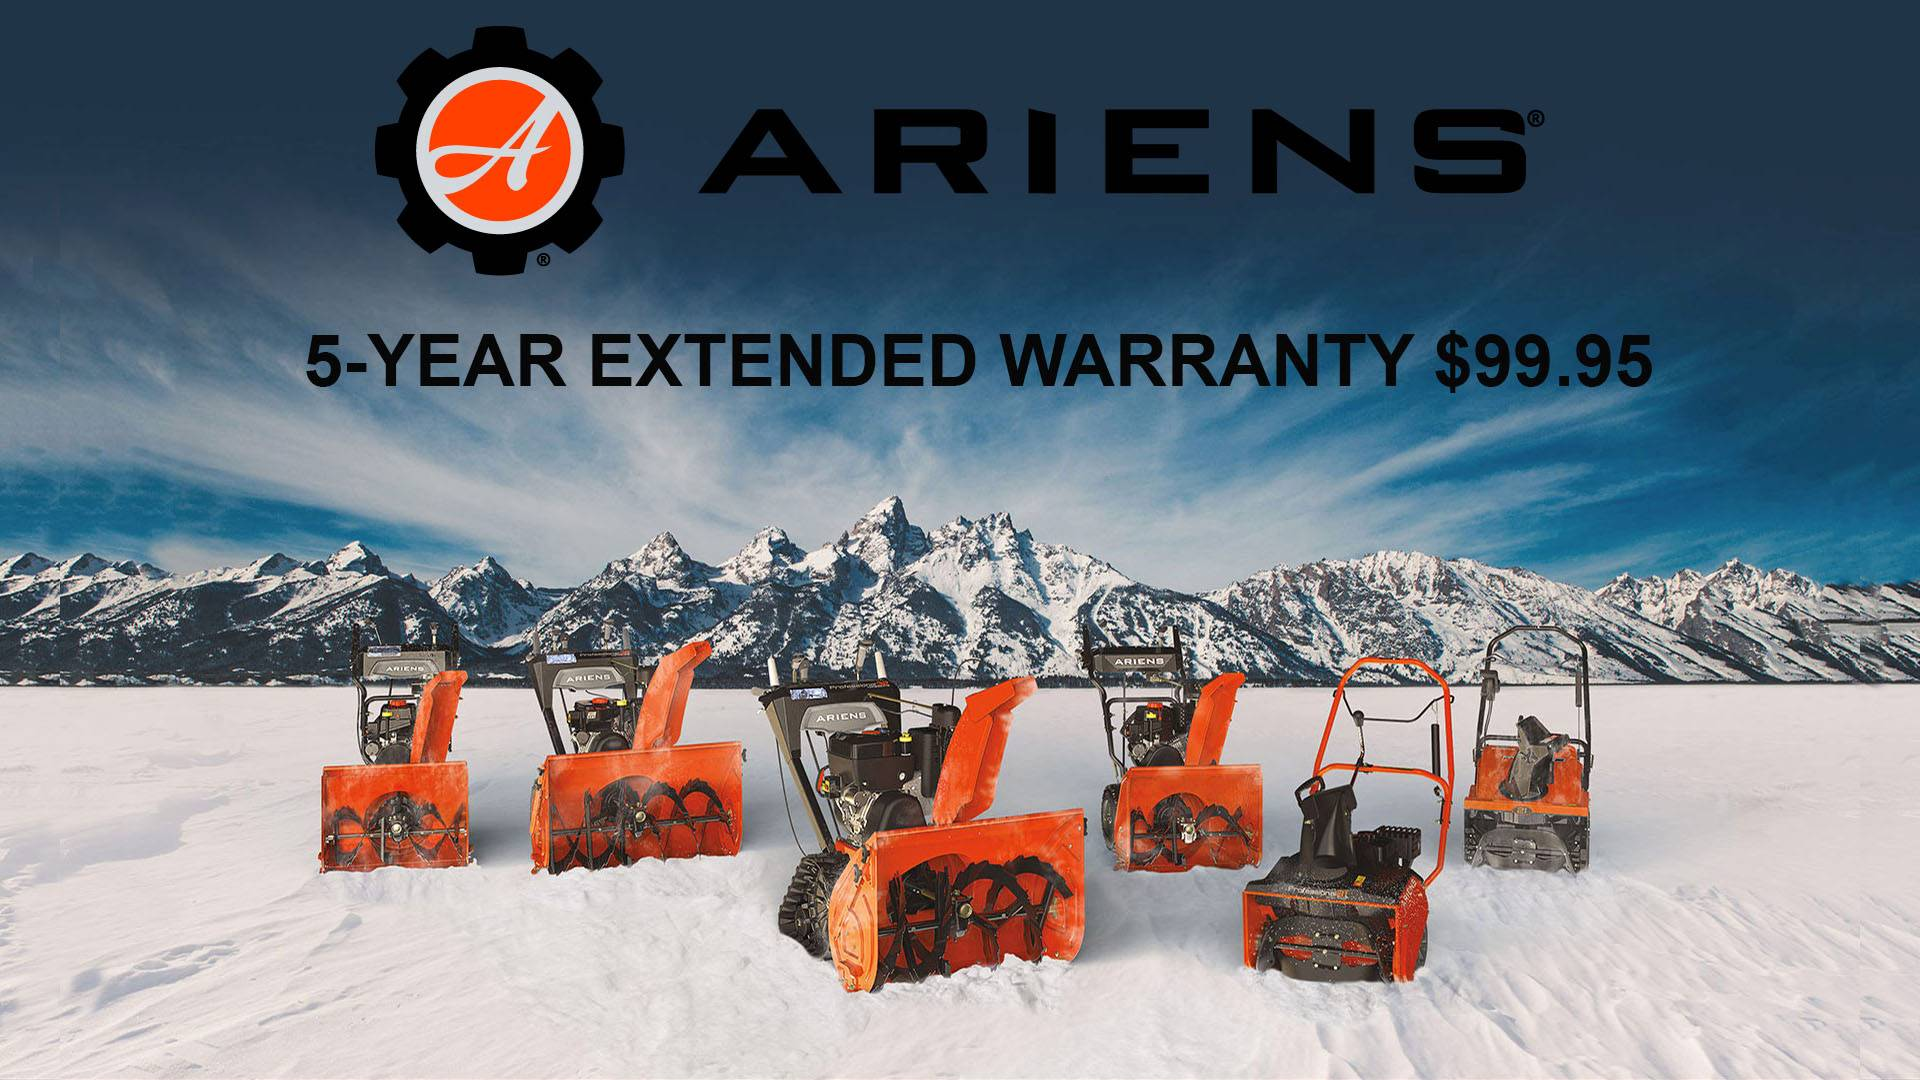 Ariens USA - 5-Year Extended Warranty $99.95